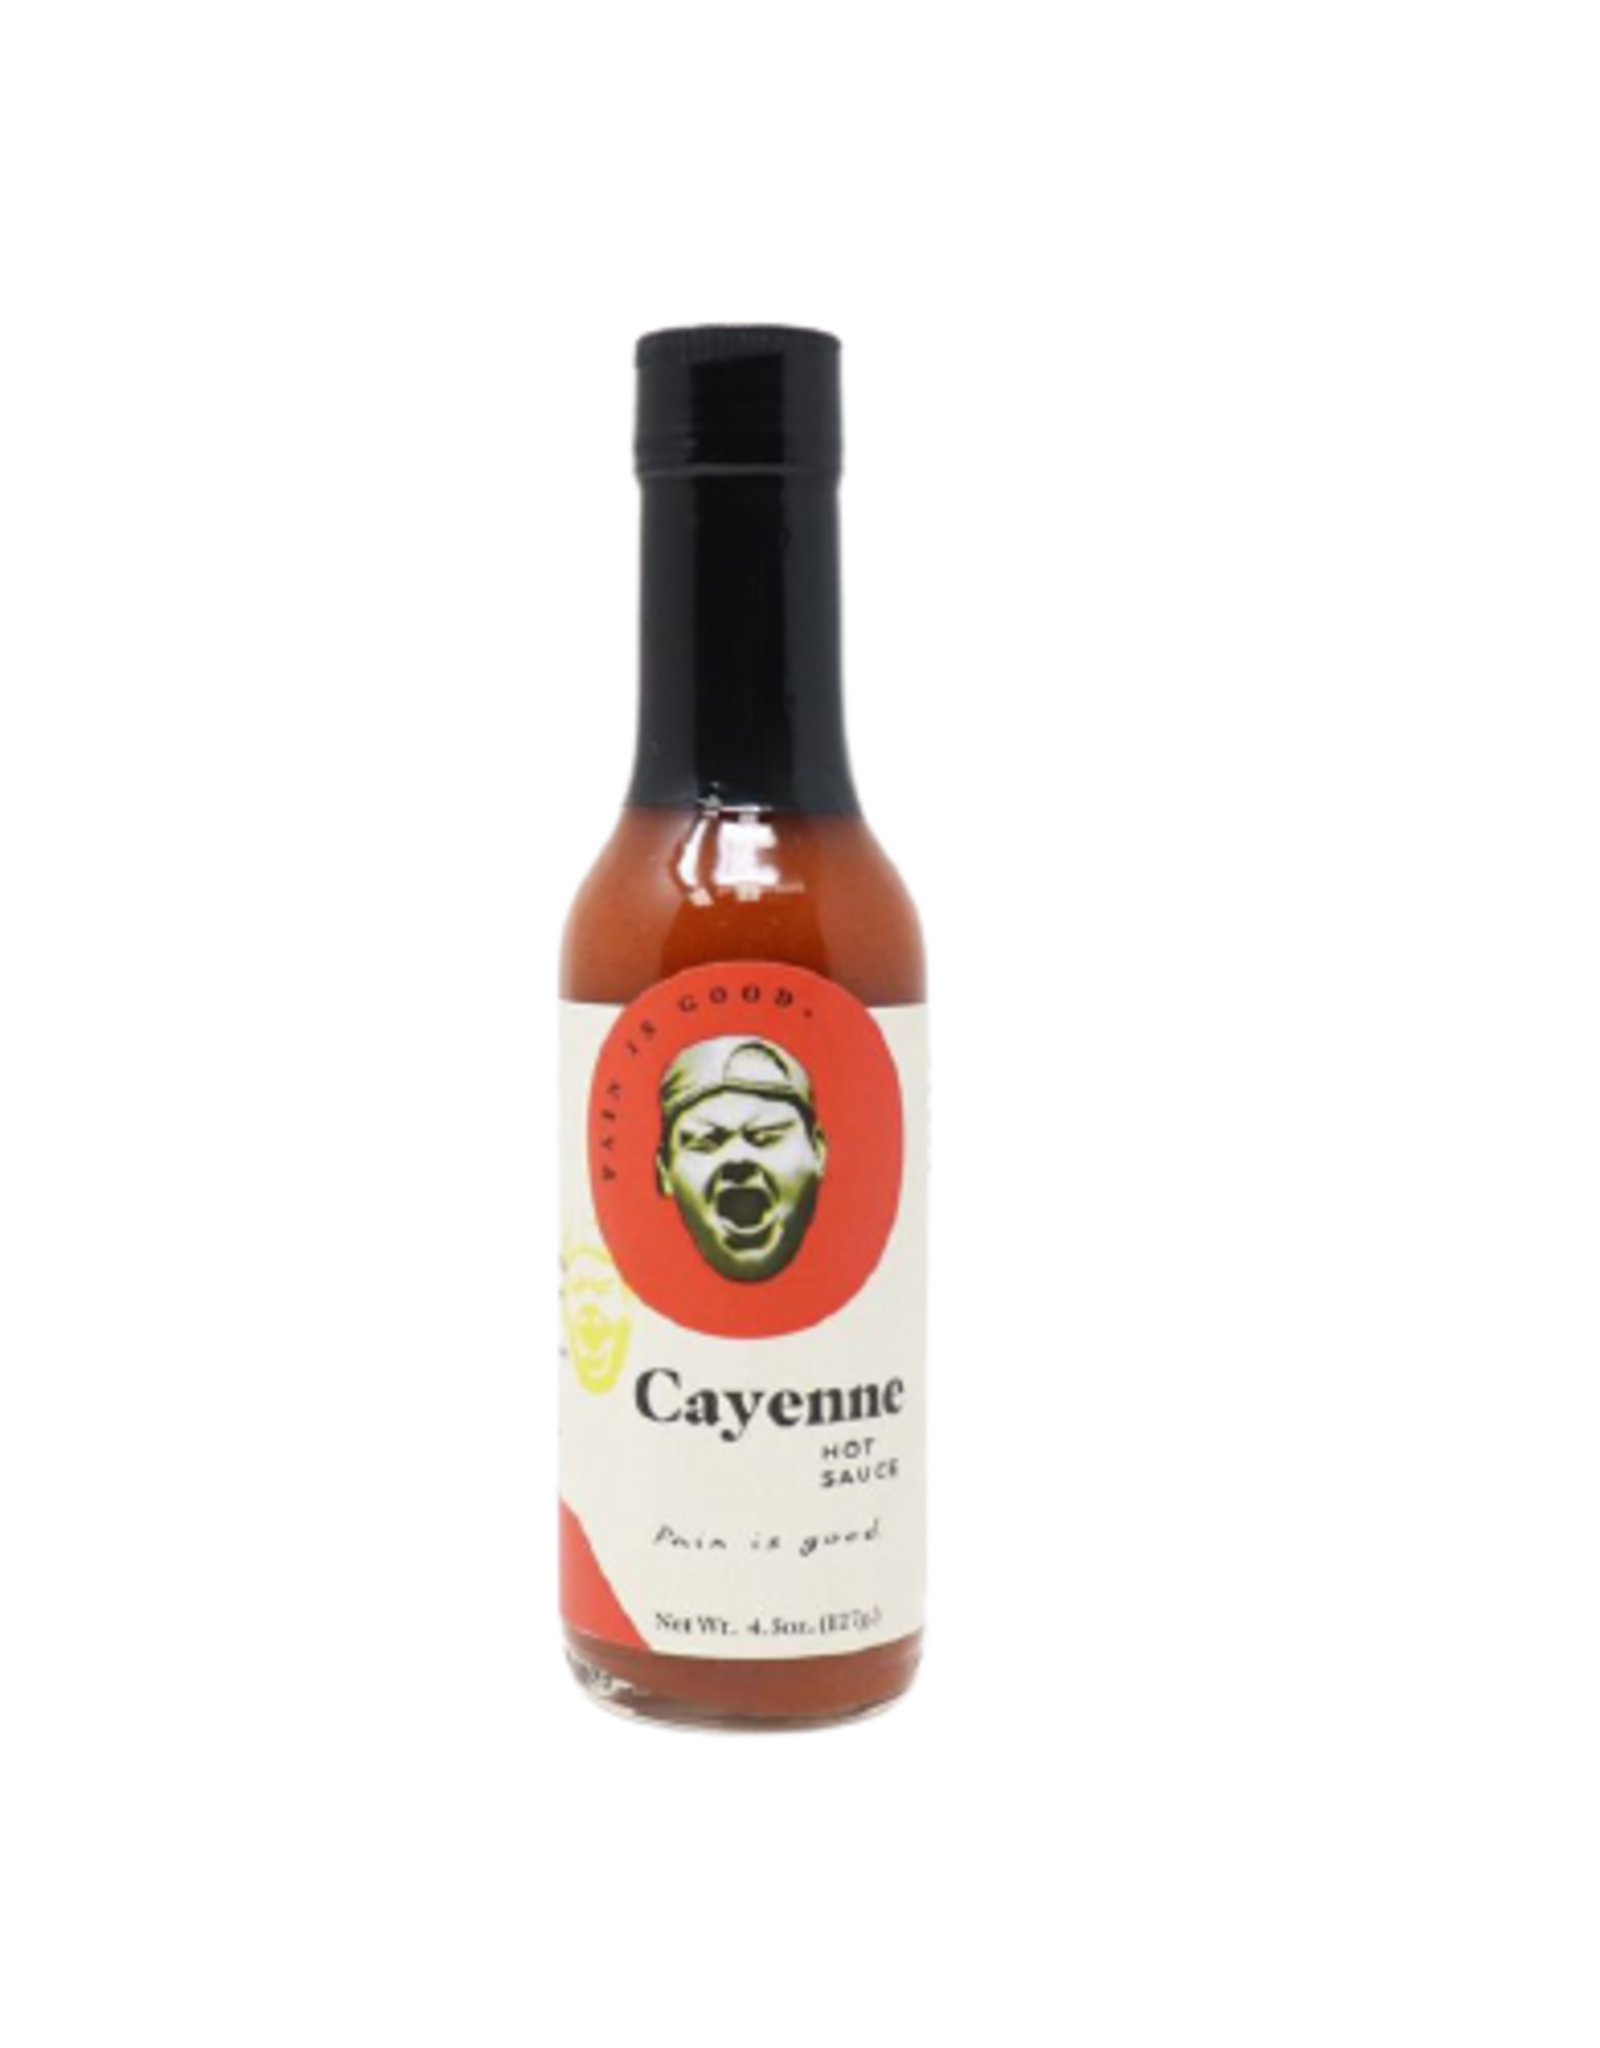 Pain is Good Cayenne